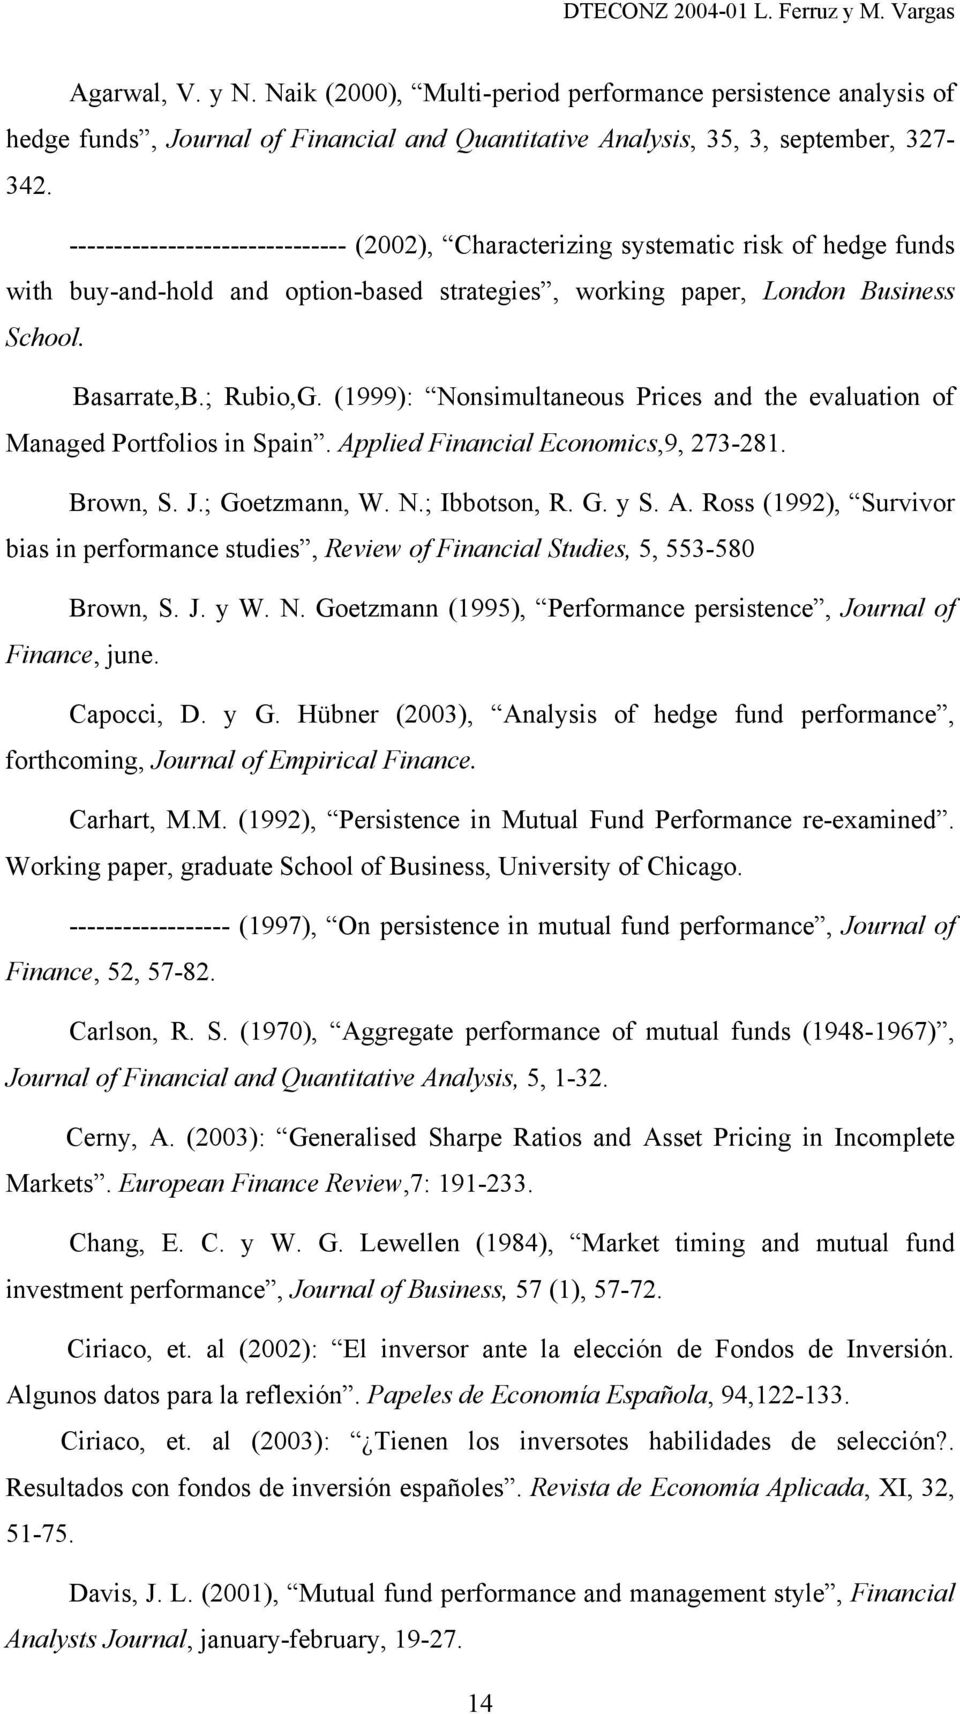 (1999): Nonsimultaneous Prices and the evaluation of Managed Portfolios in Spain. Applied Financial Economics,9, 273-281. Brown, S. J.; Goetzmann, W. N.; Ibbotson, R. G. y S. A. Ross (1992), Survivor bias in performance studies, Review of Financial Studies, 5, 553-580 Brown, S.